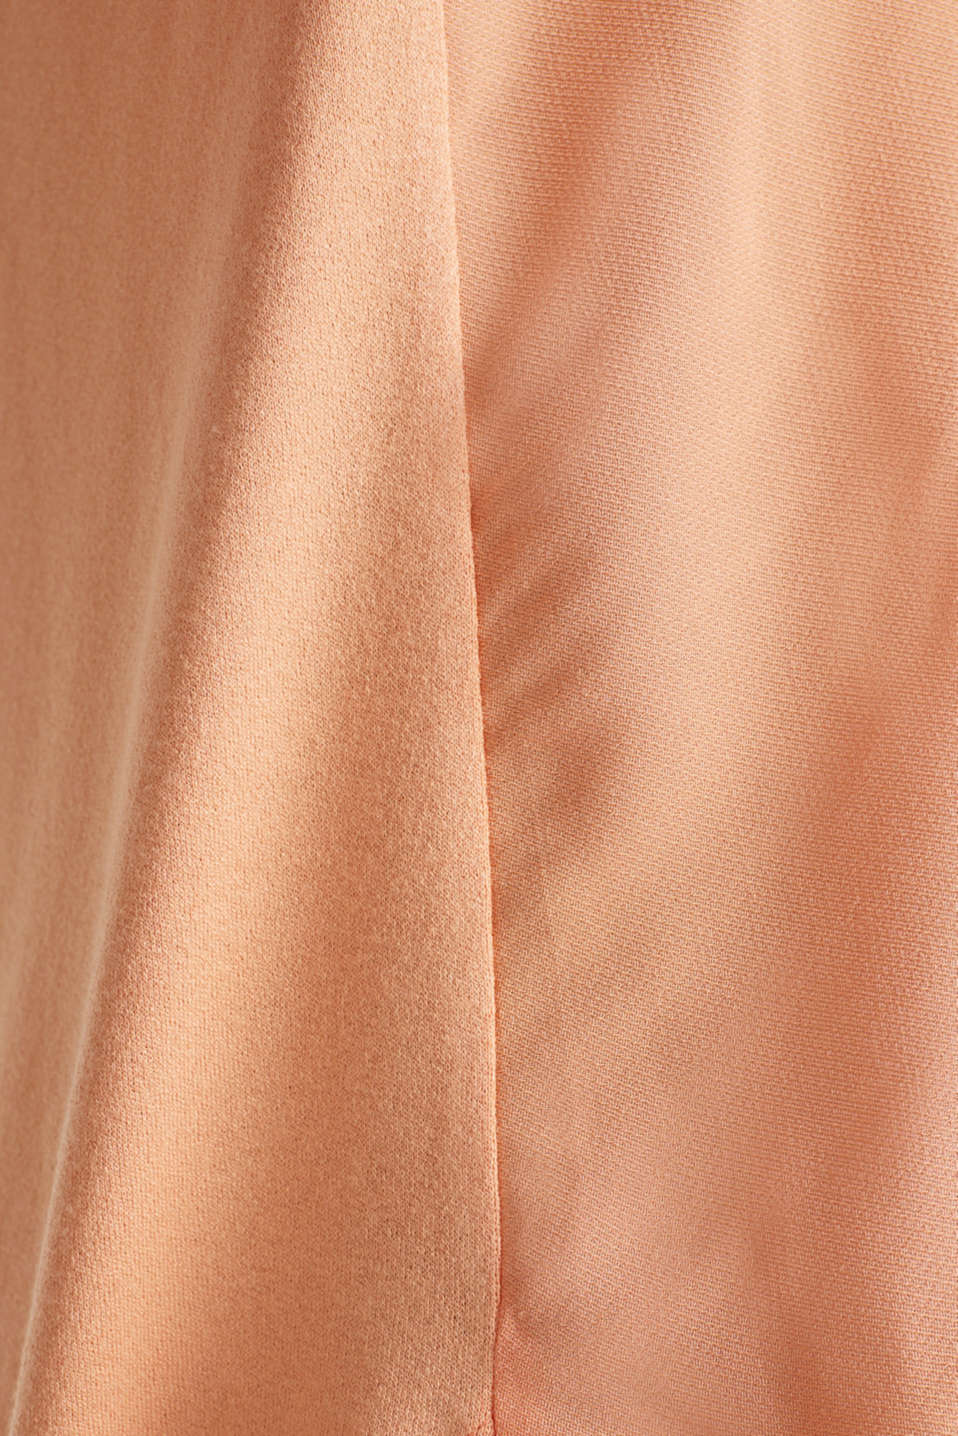 Blousy T-shirt in a material mix, ORANGE, detail image number 4